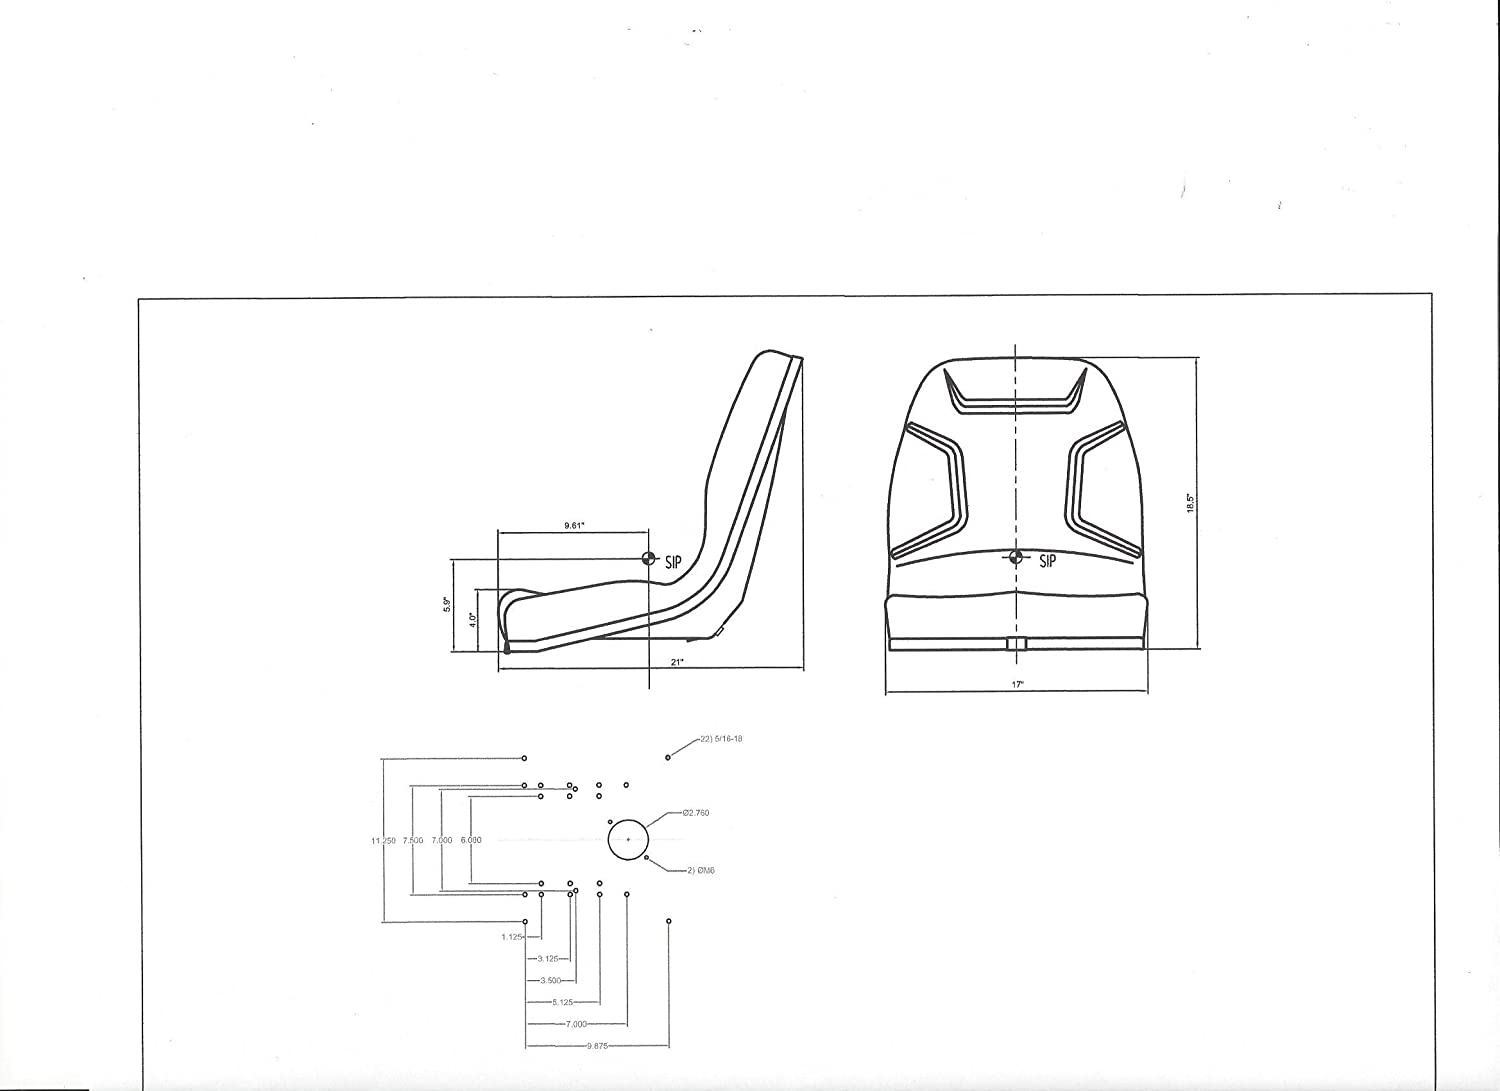 Kubota G5200 Wiring Diagram. Kubota F2100 Wiring Diagram ... on